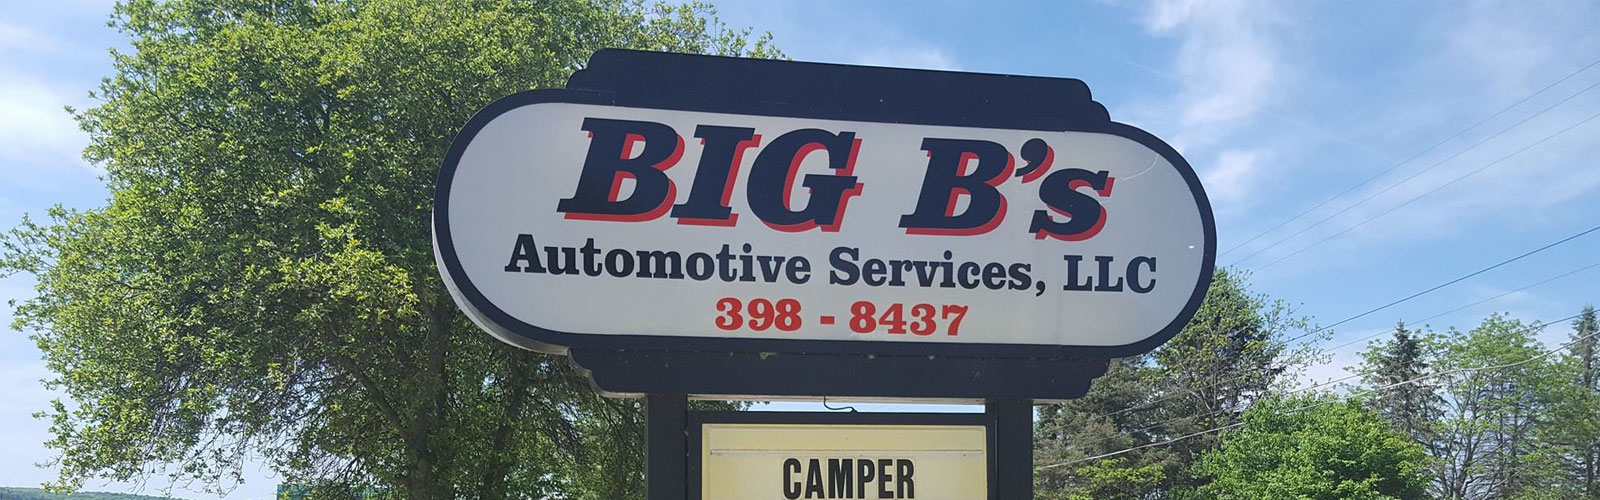 Big B's Automotive Services LLC